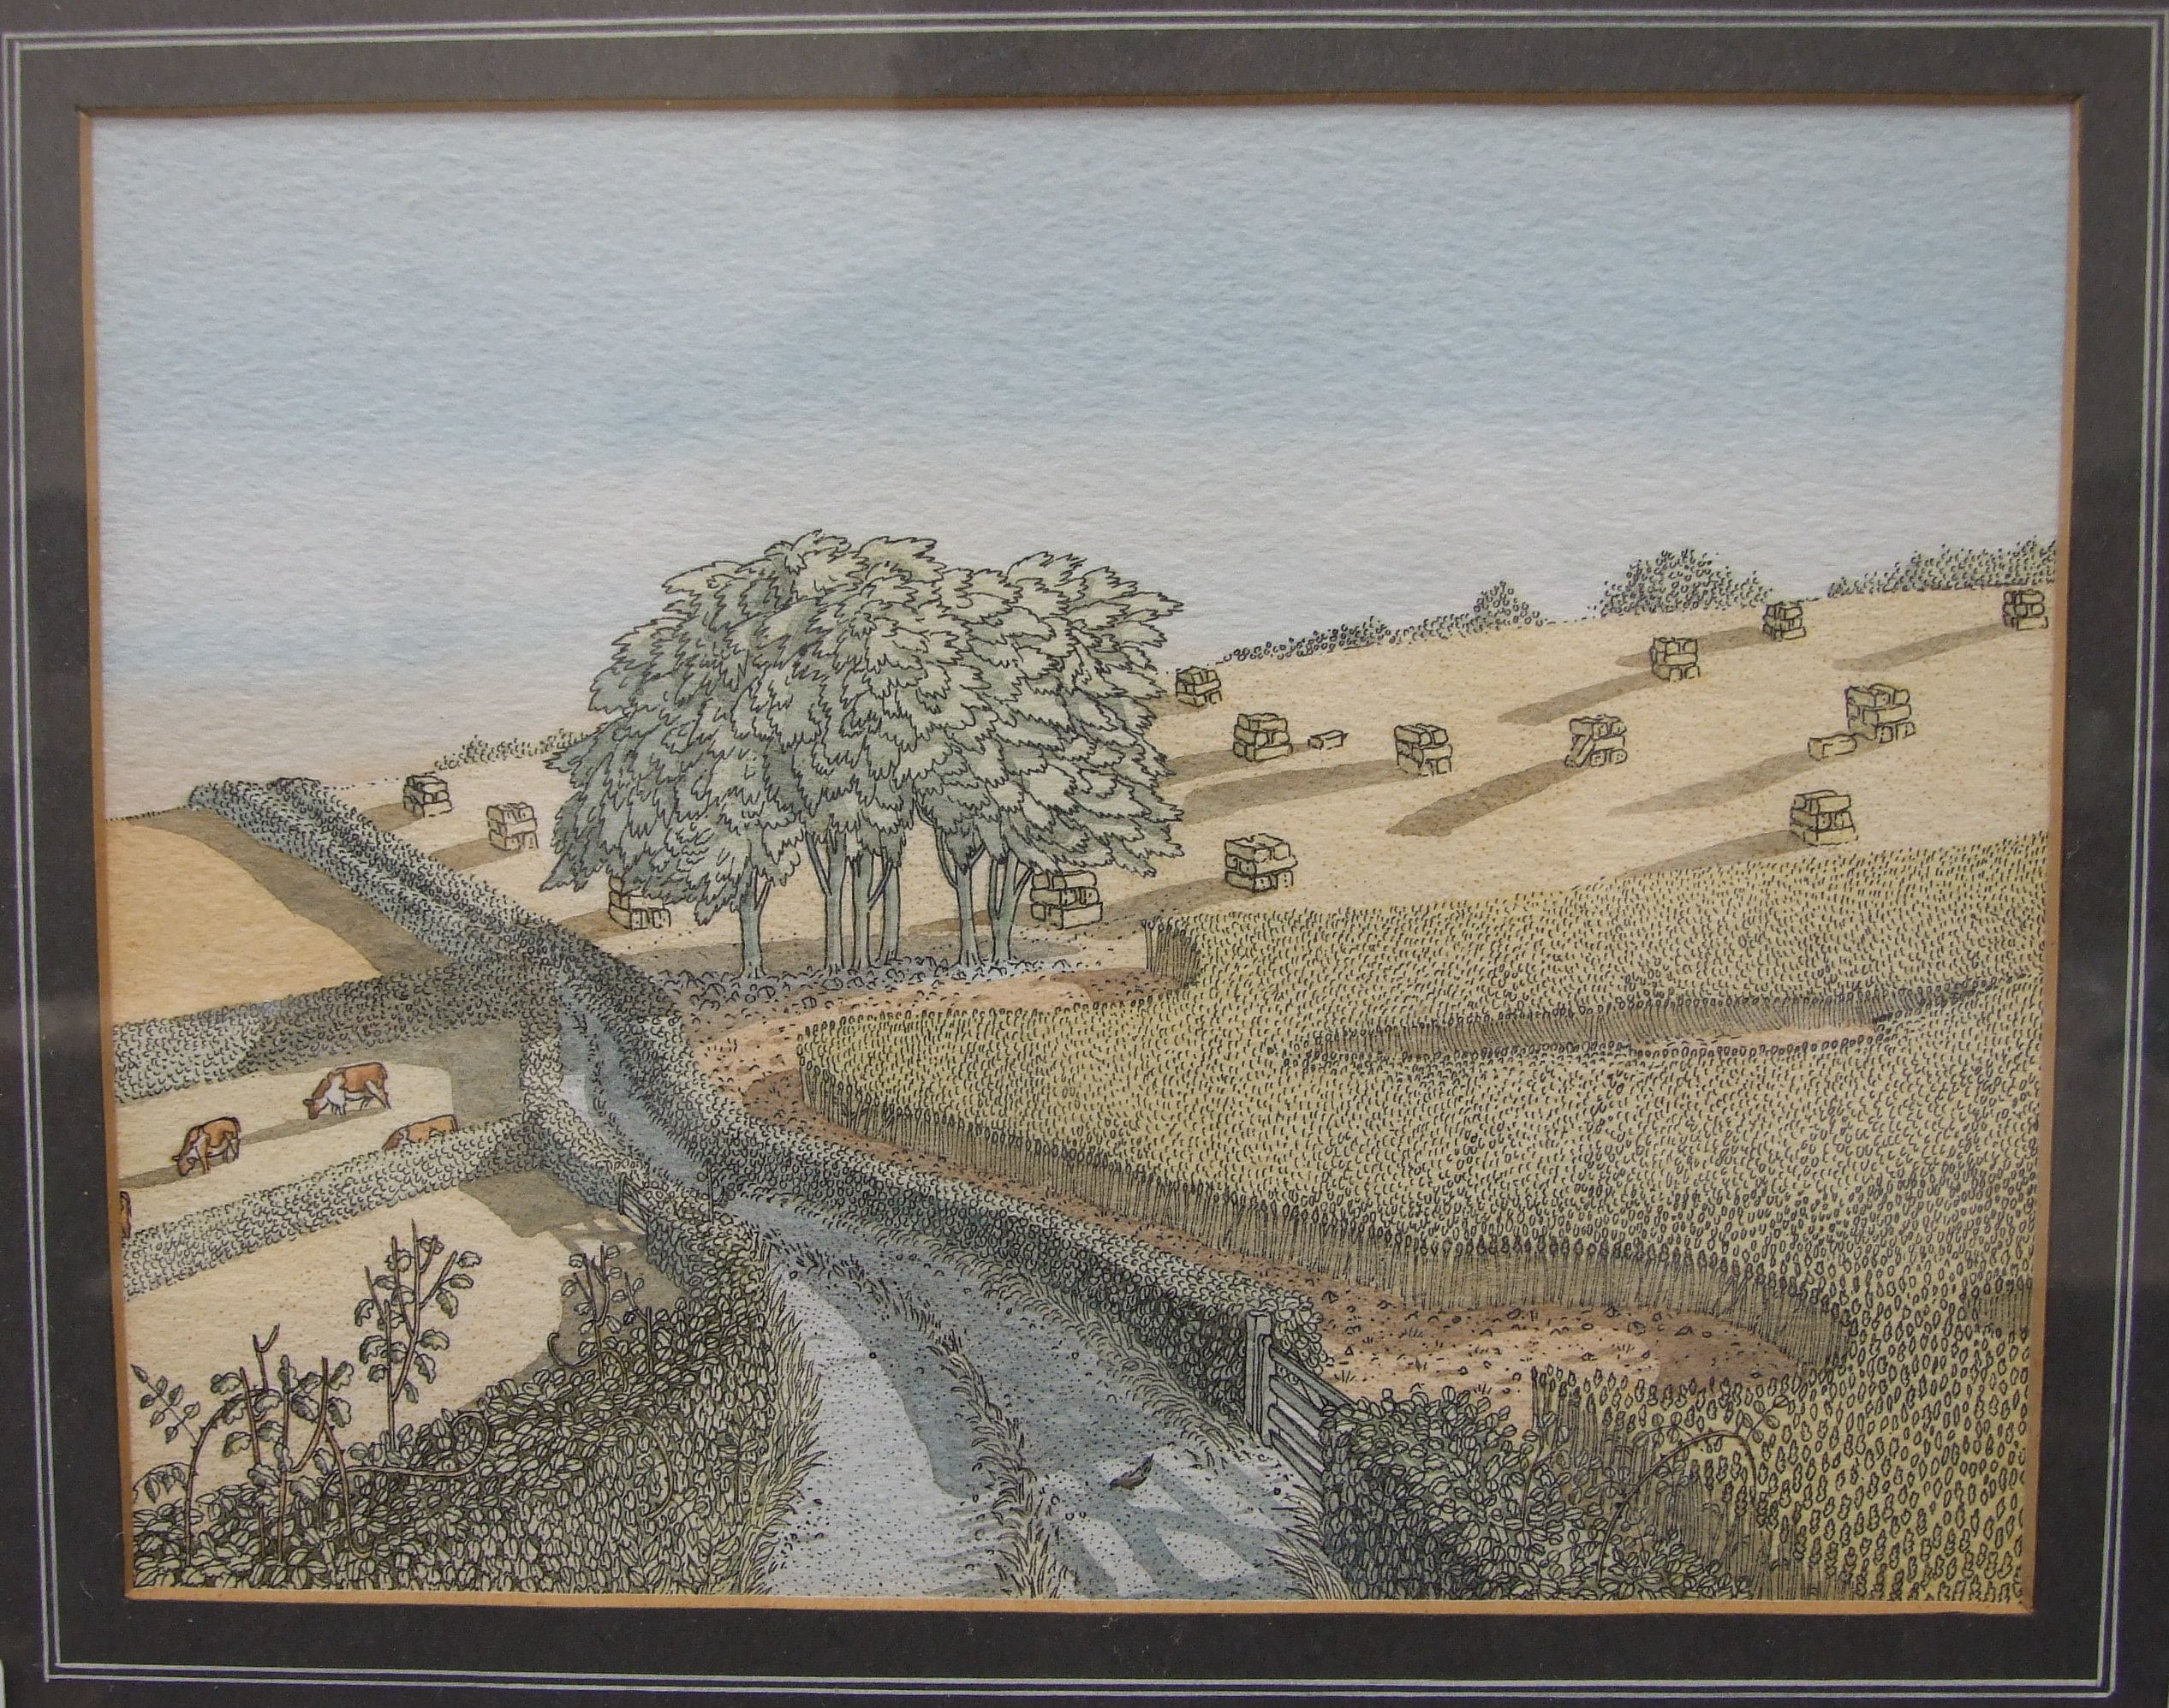 •Benedict Blathwayt (b.1951, Author and Illustrator) CORNFIELDS, COUNTRY LANE AND CATTLE Pen, ink